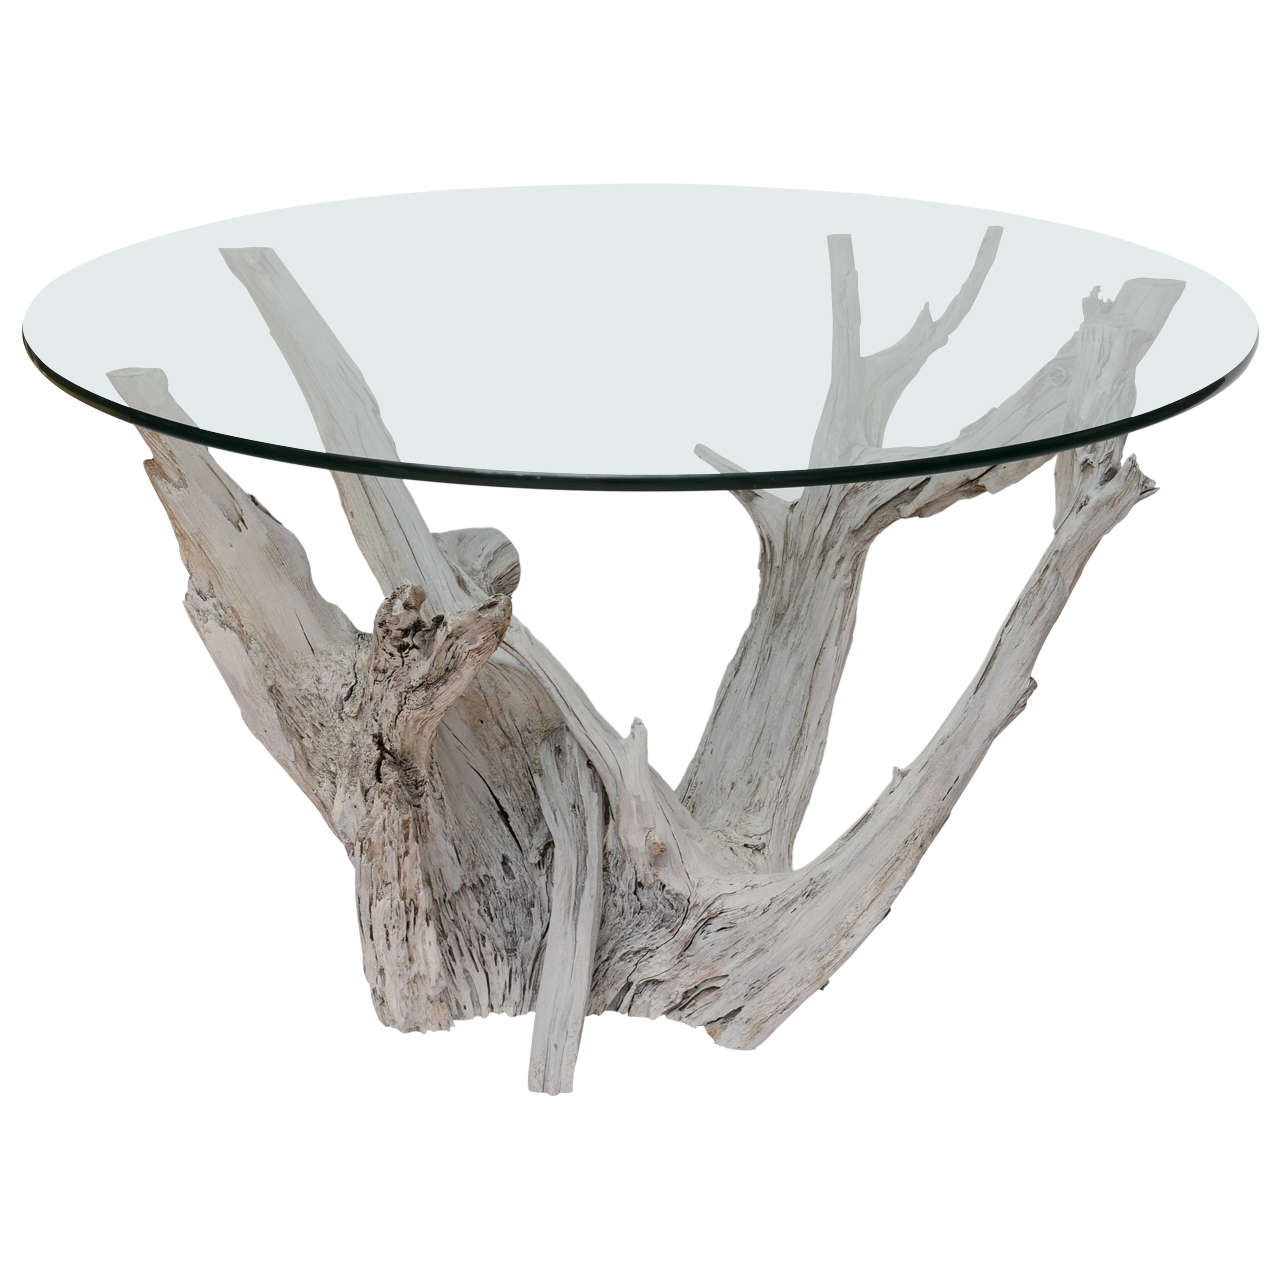 Large Driftwood Center or Dining Table : X from 1stdibs.com size 1280 x 1280 jpeg 83kB